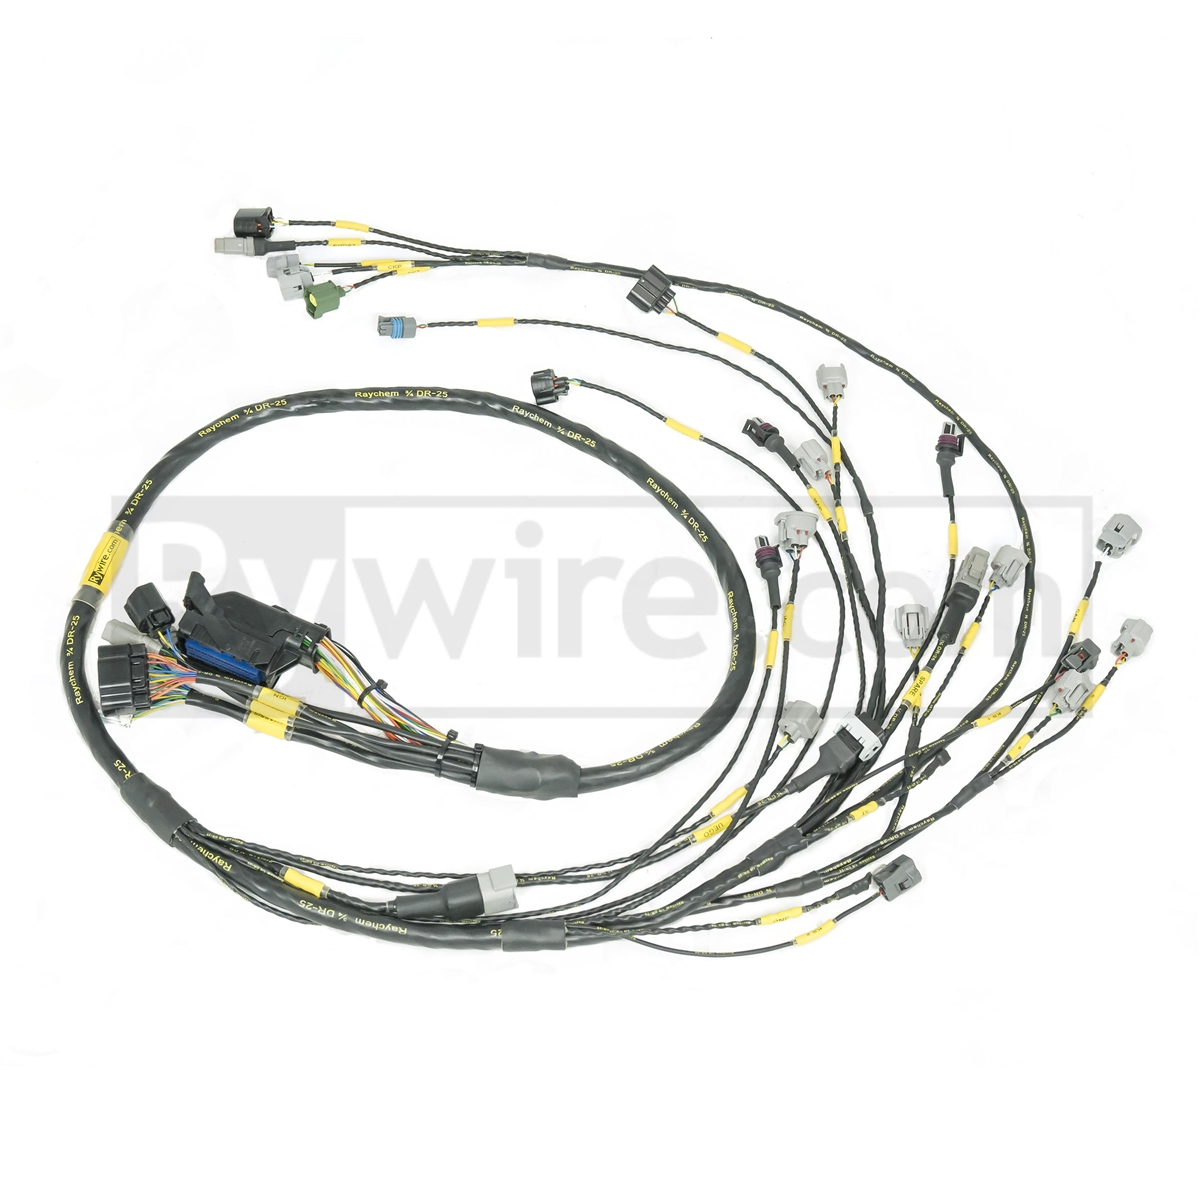 Wondrous 2Jz Wiring Harness Wiring Diagram Wiring Digital Resources Operpmognl